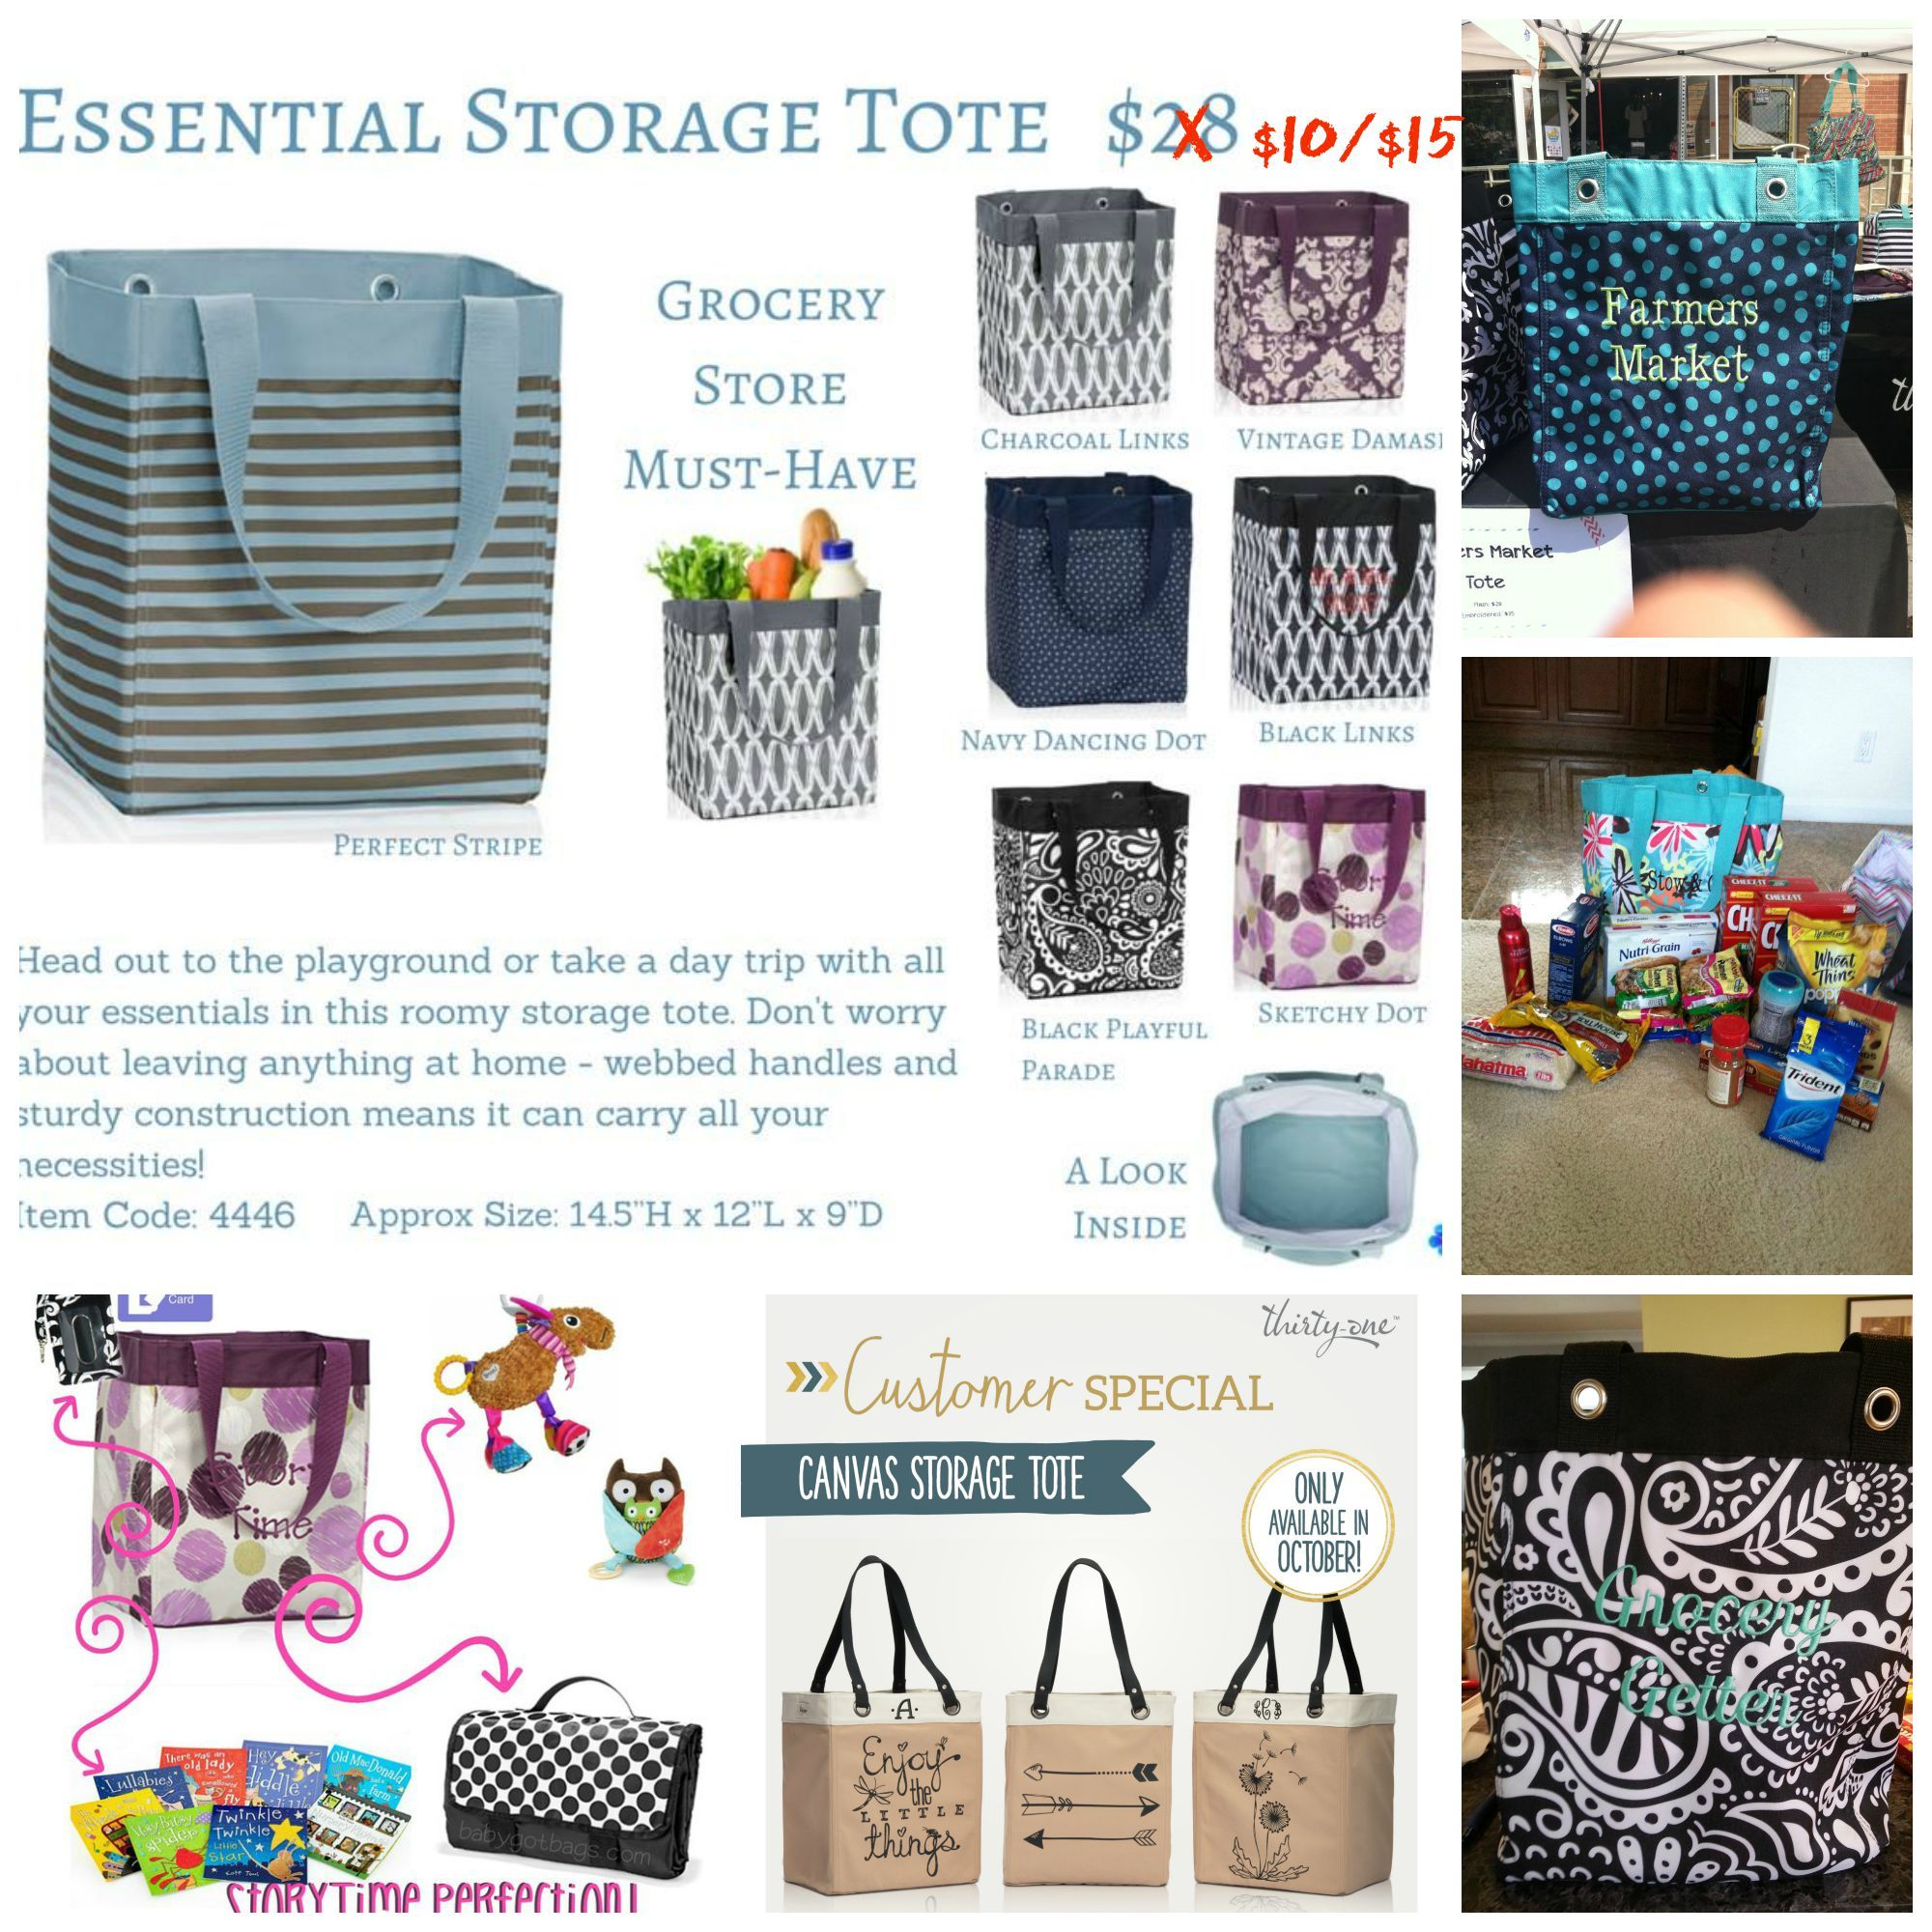 Get Your Essential Storage Tote In October For Only $10 With Your $35  Purchase, Or